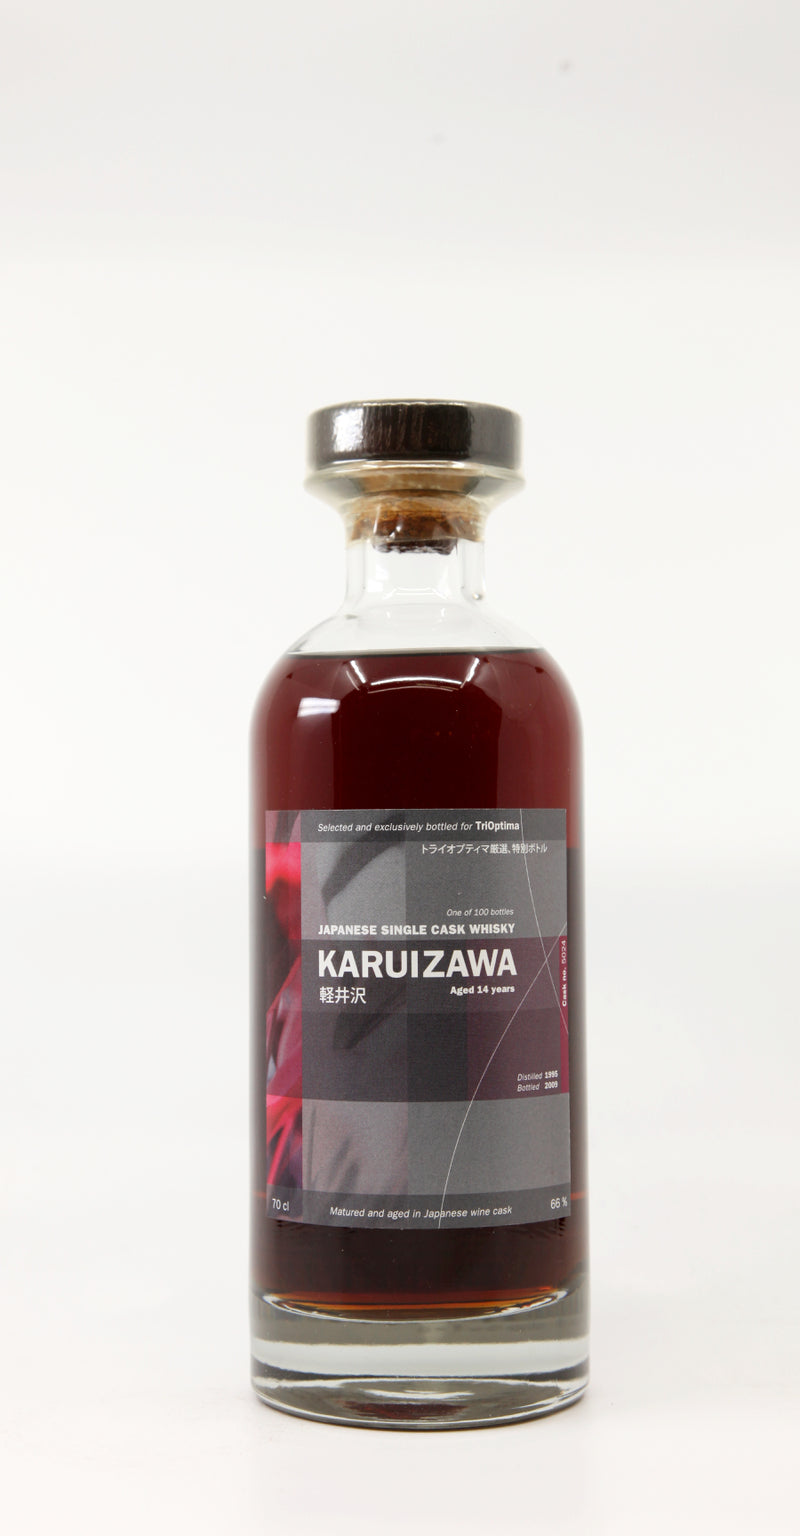 KARUIZAWA 1995 14 YEARS BOTTLED FOR TRIOPTIMA #5024 JAPANESE WINE CASK 70CL